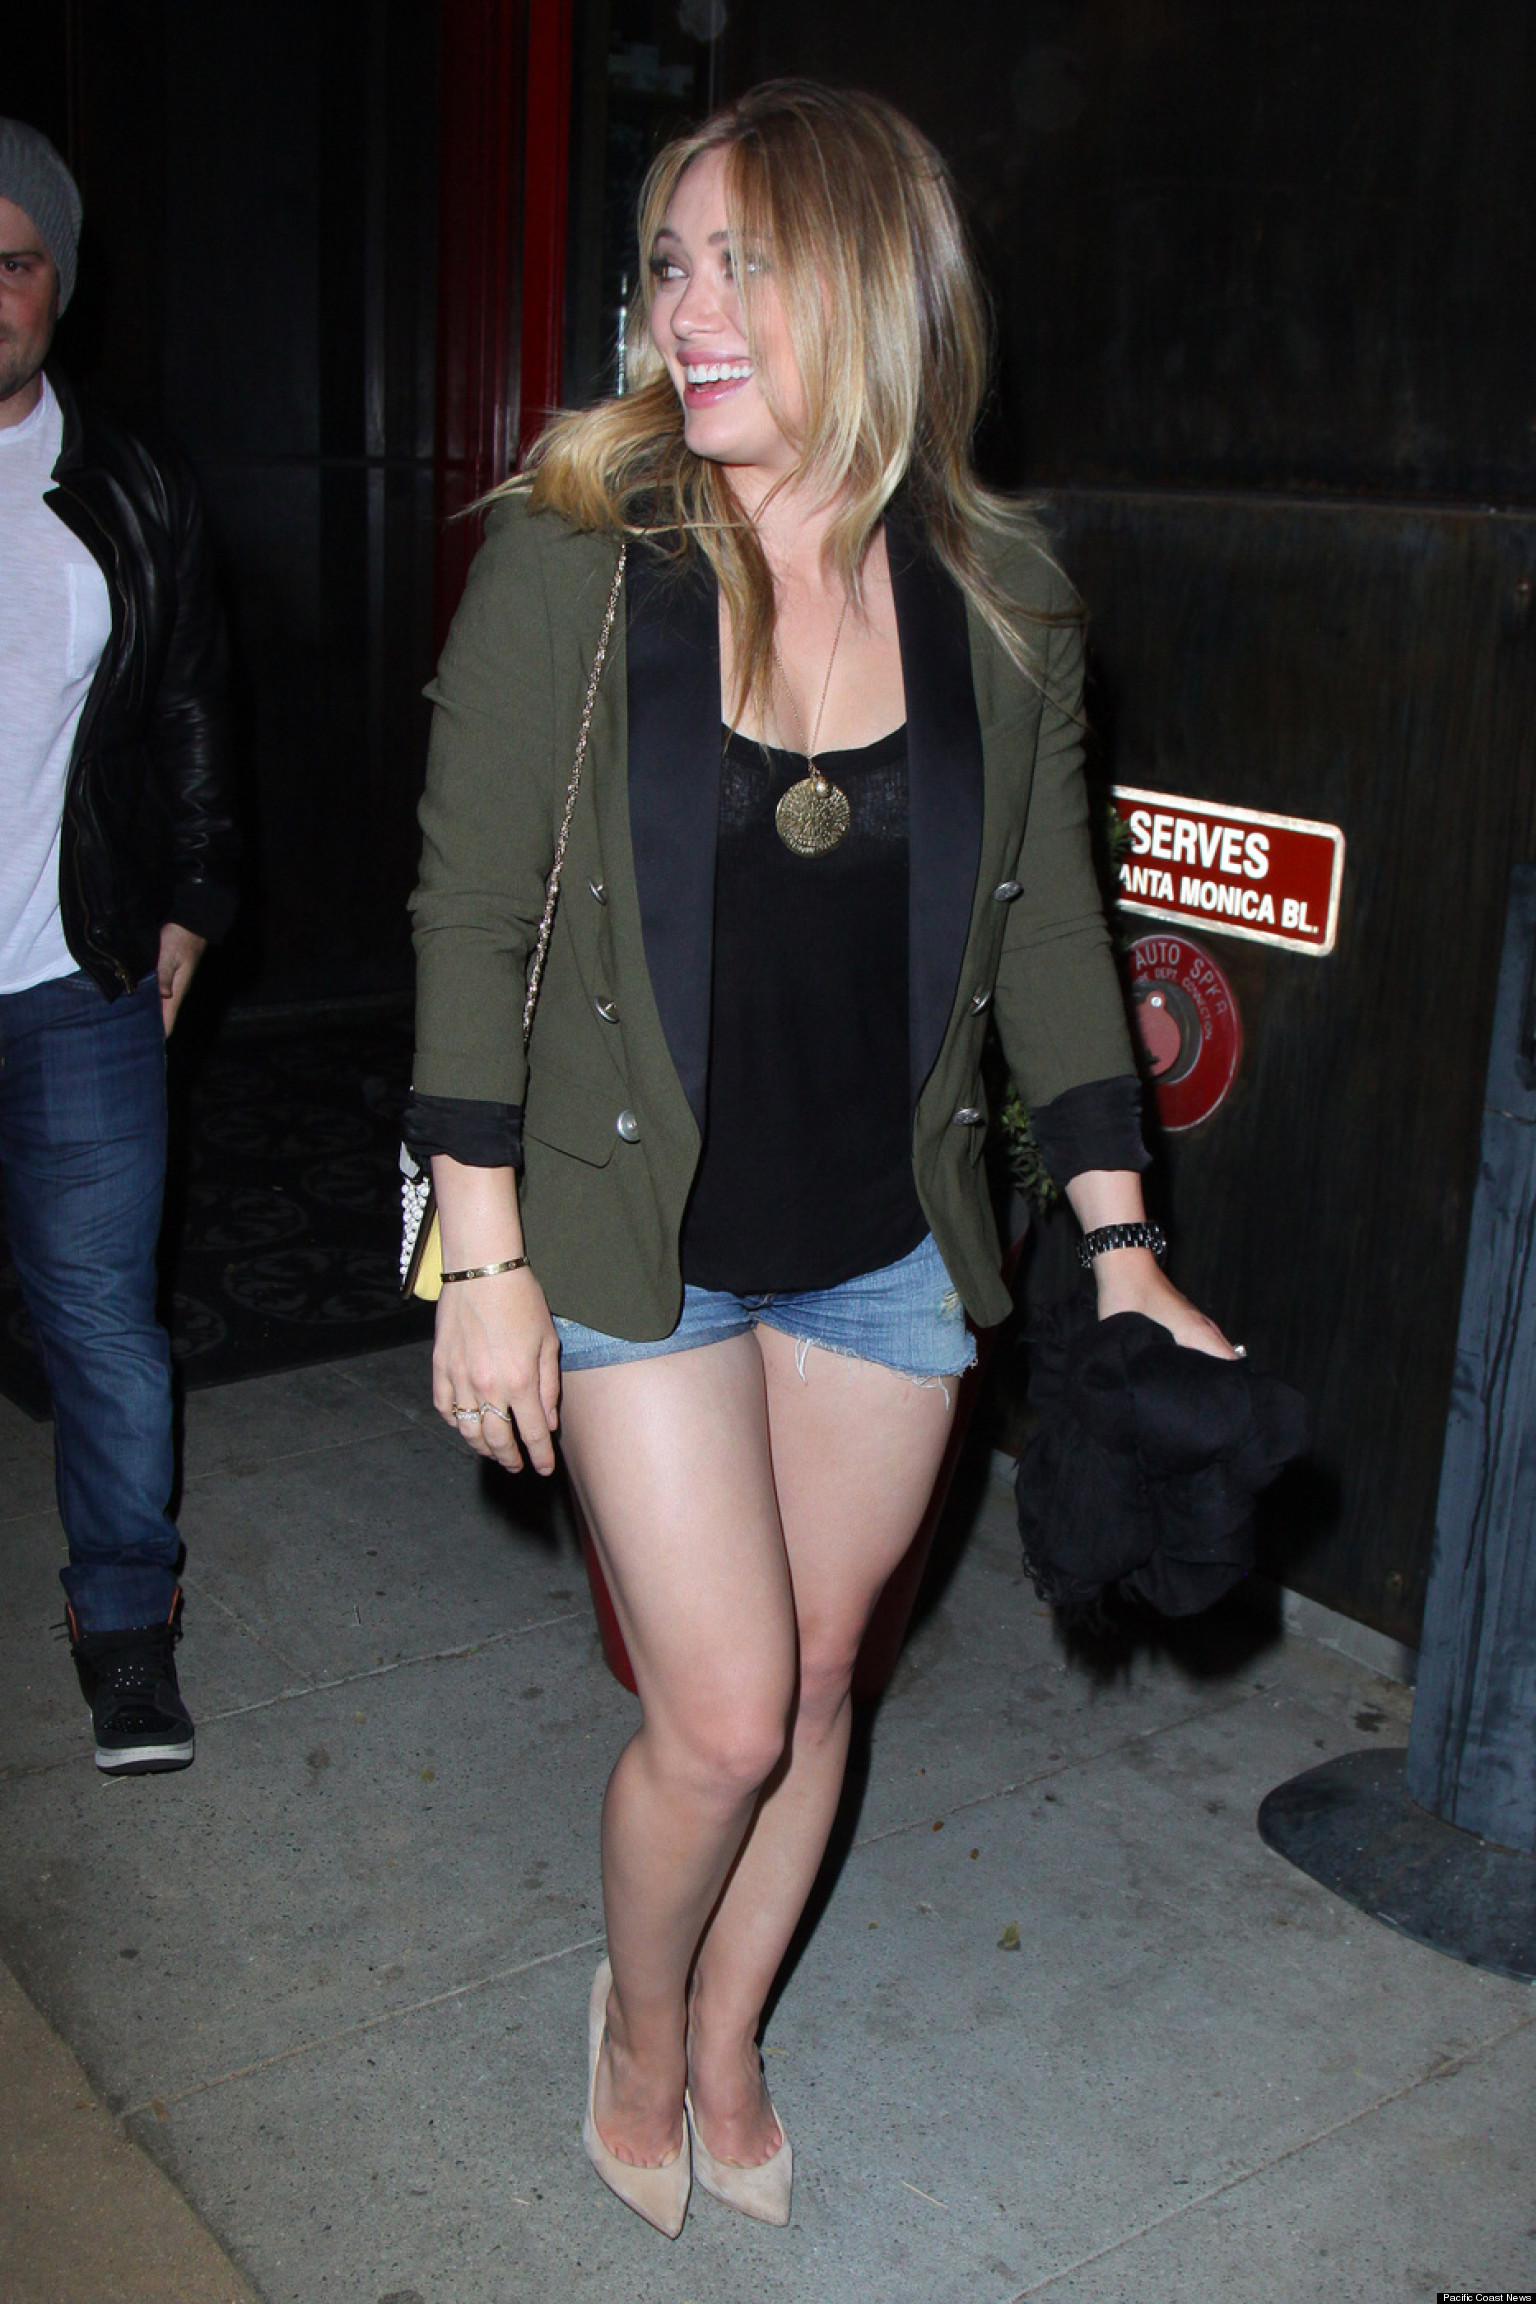 hilary duffs legs on full display in shorts shorts